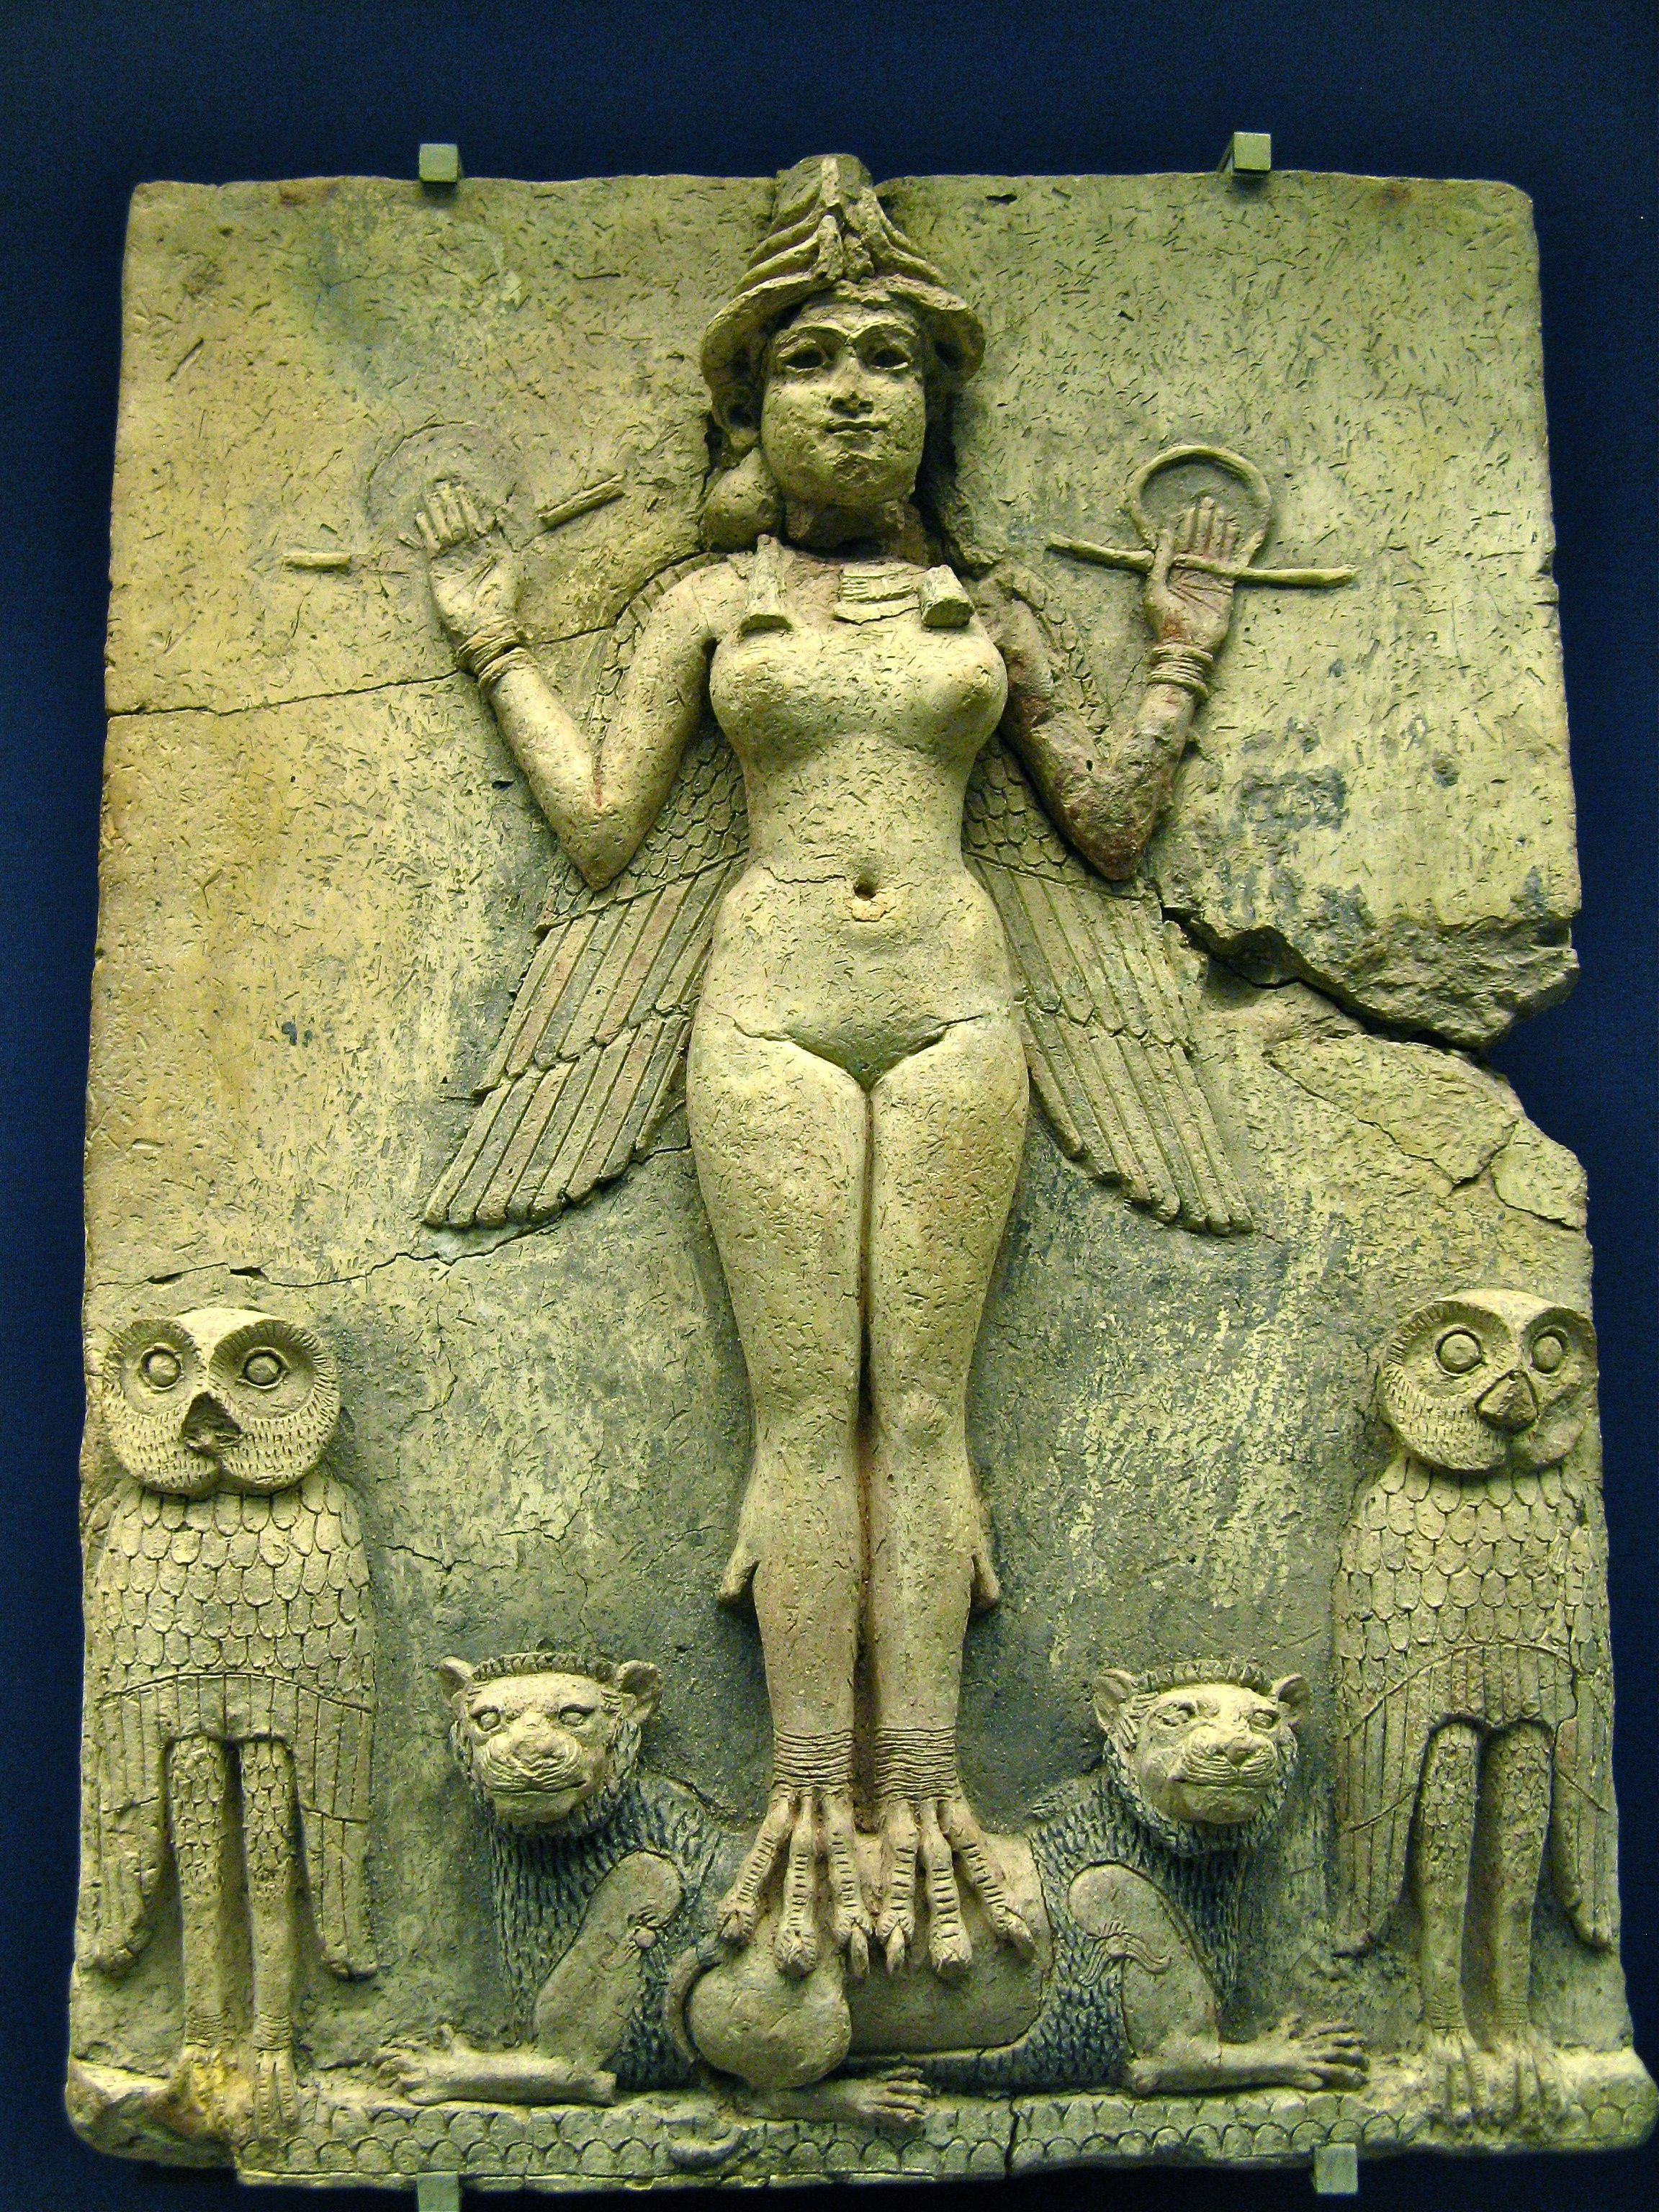 Inanna/Ishtar Summerian/Babylonian goddess of love and war.